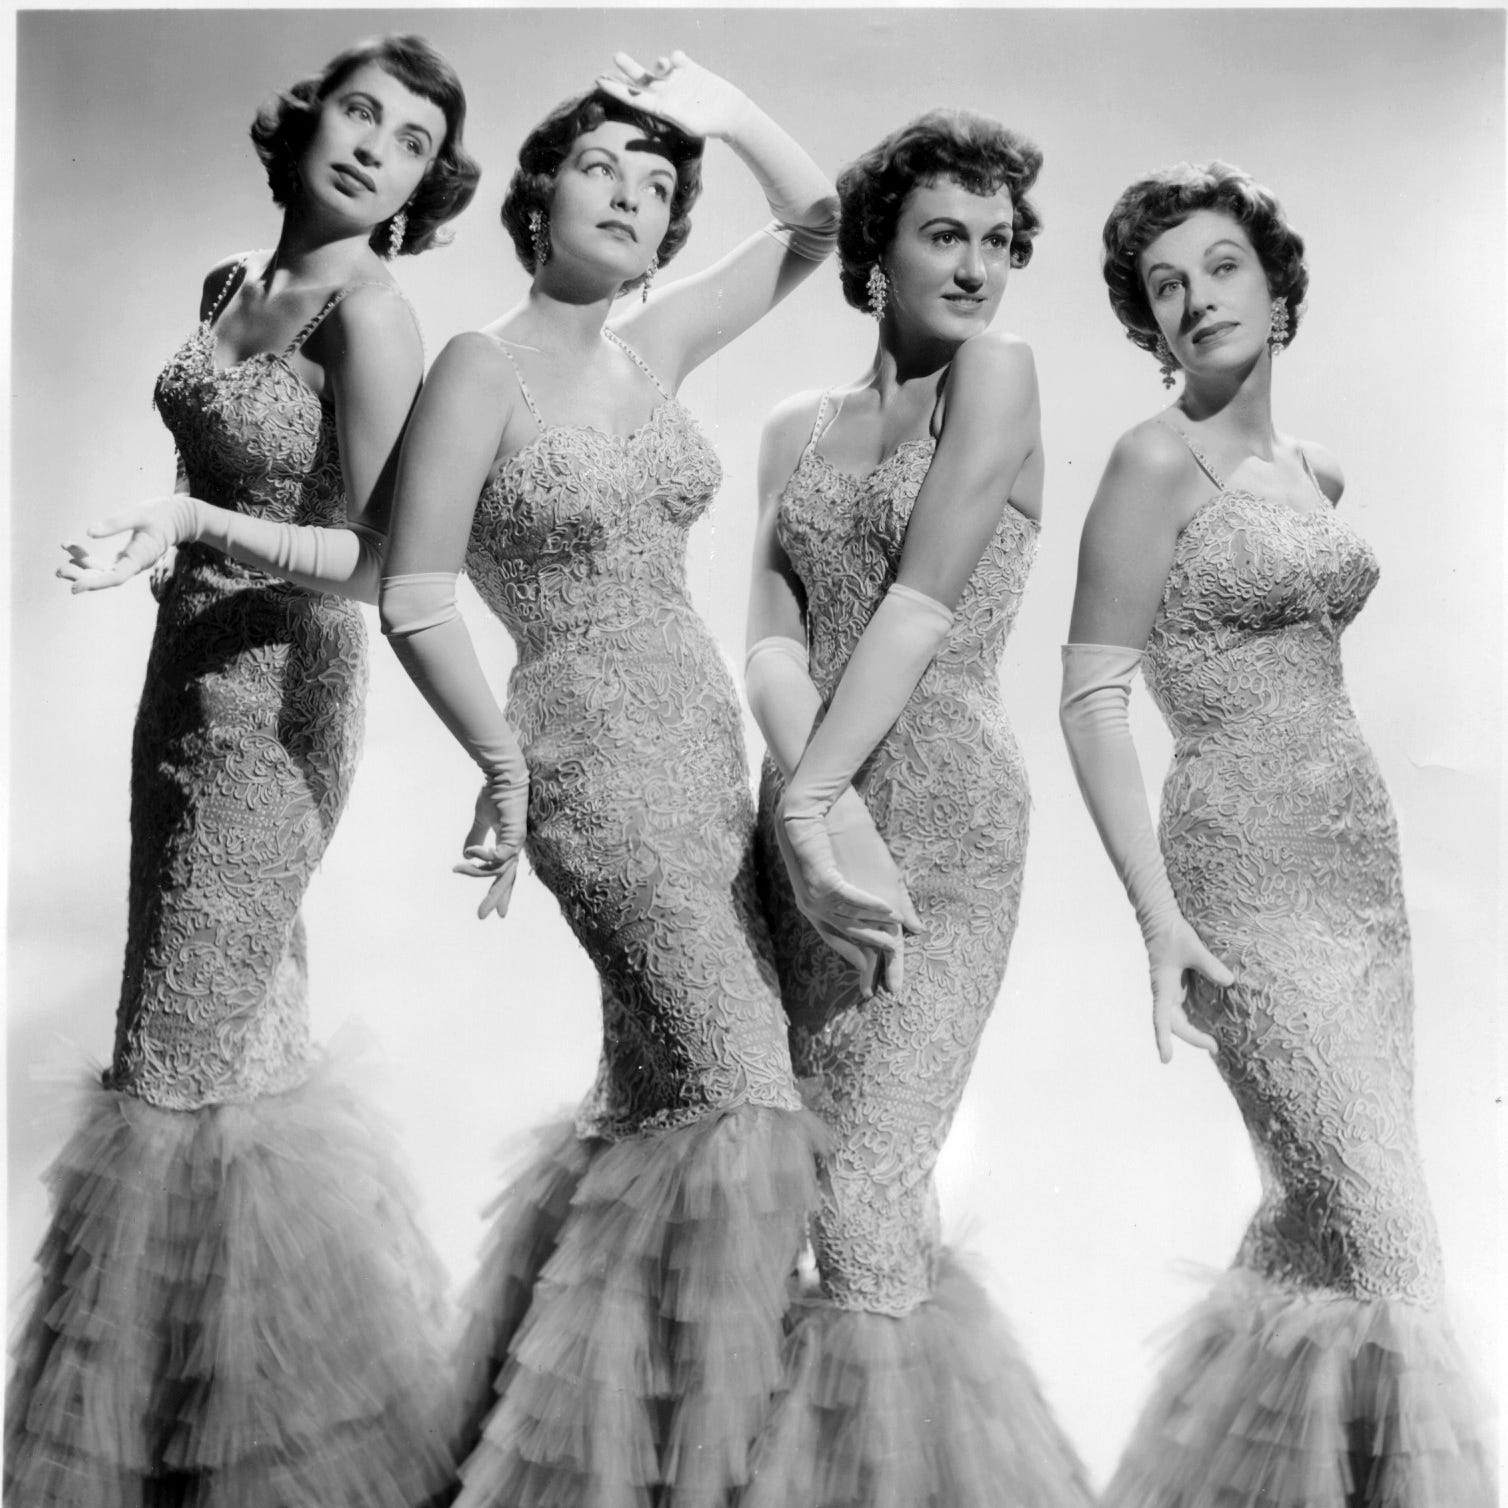 'Bring me a dream': Remembering Wisconsin's famed Chordettes